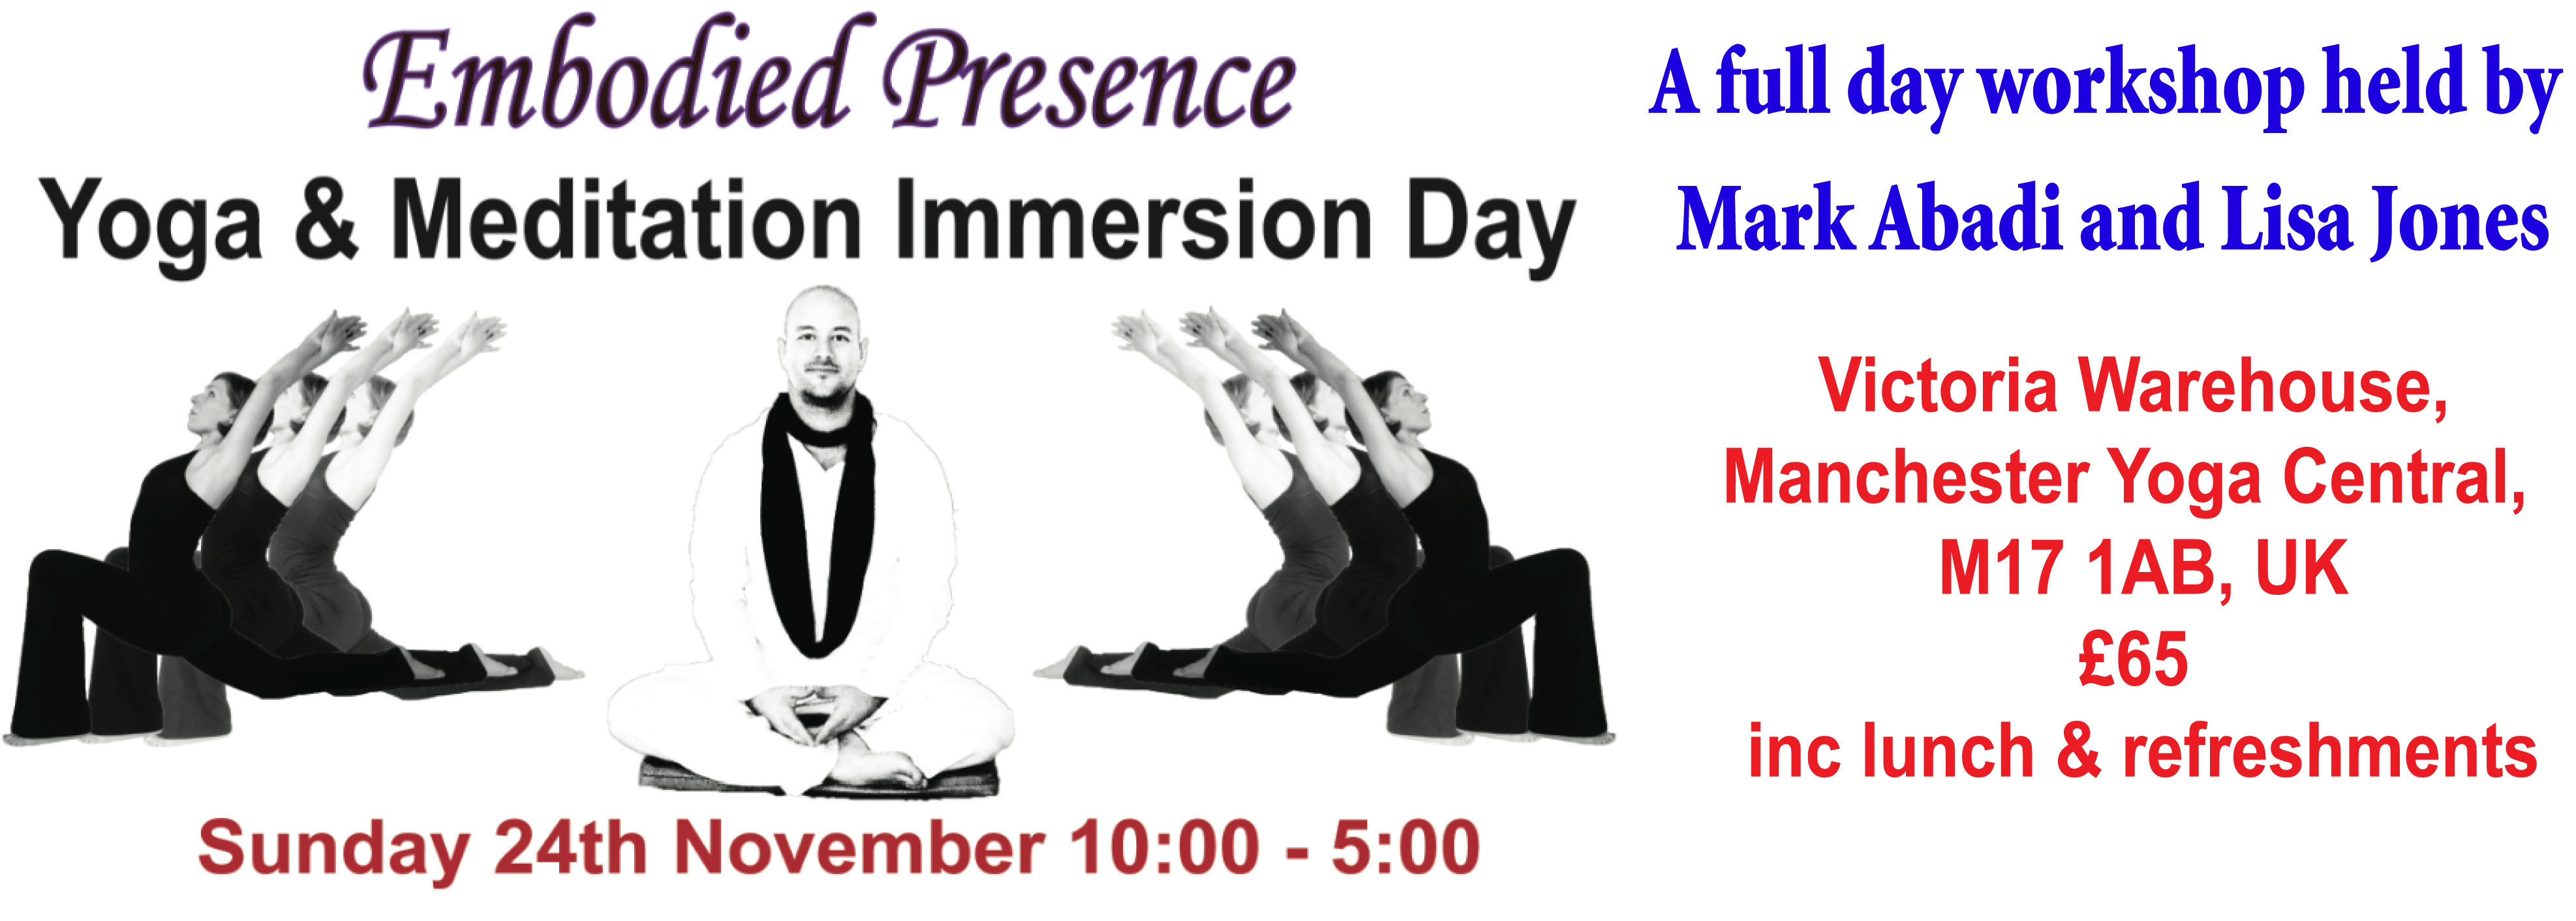 Embodied Presence Workshop banner